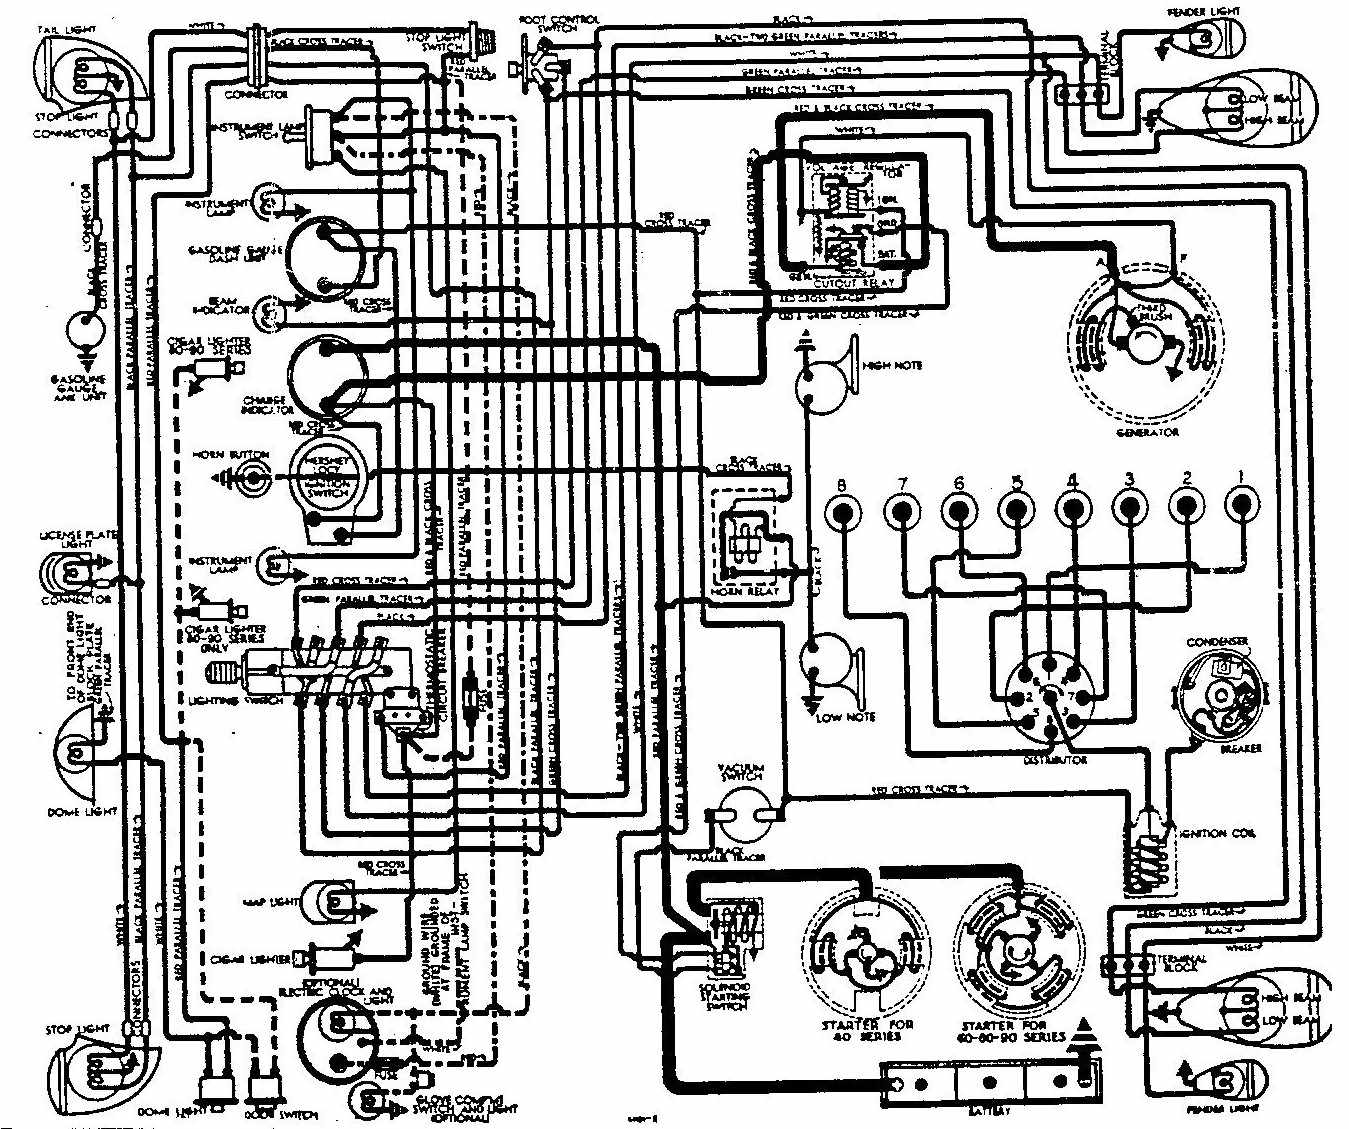 medium resolution of 1938 buick wiring diagram wiring diagram1938 buick wiring diagram